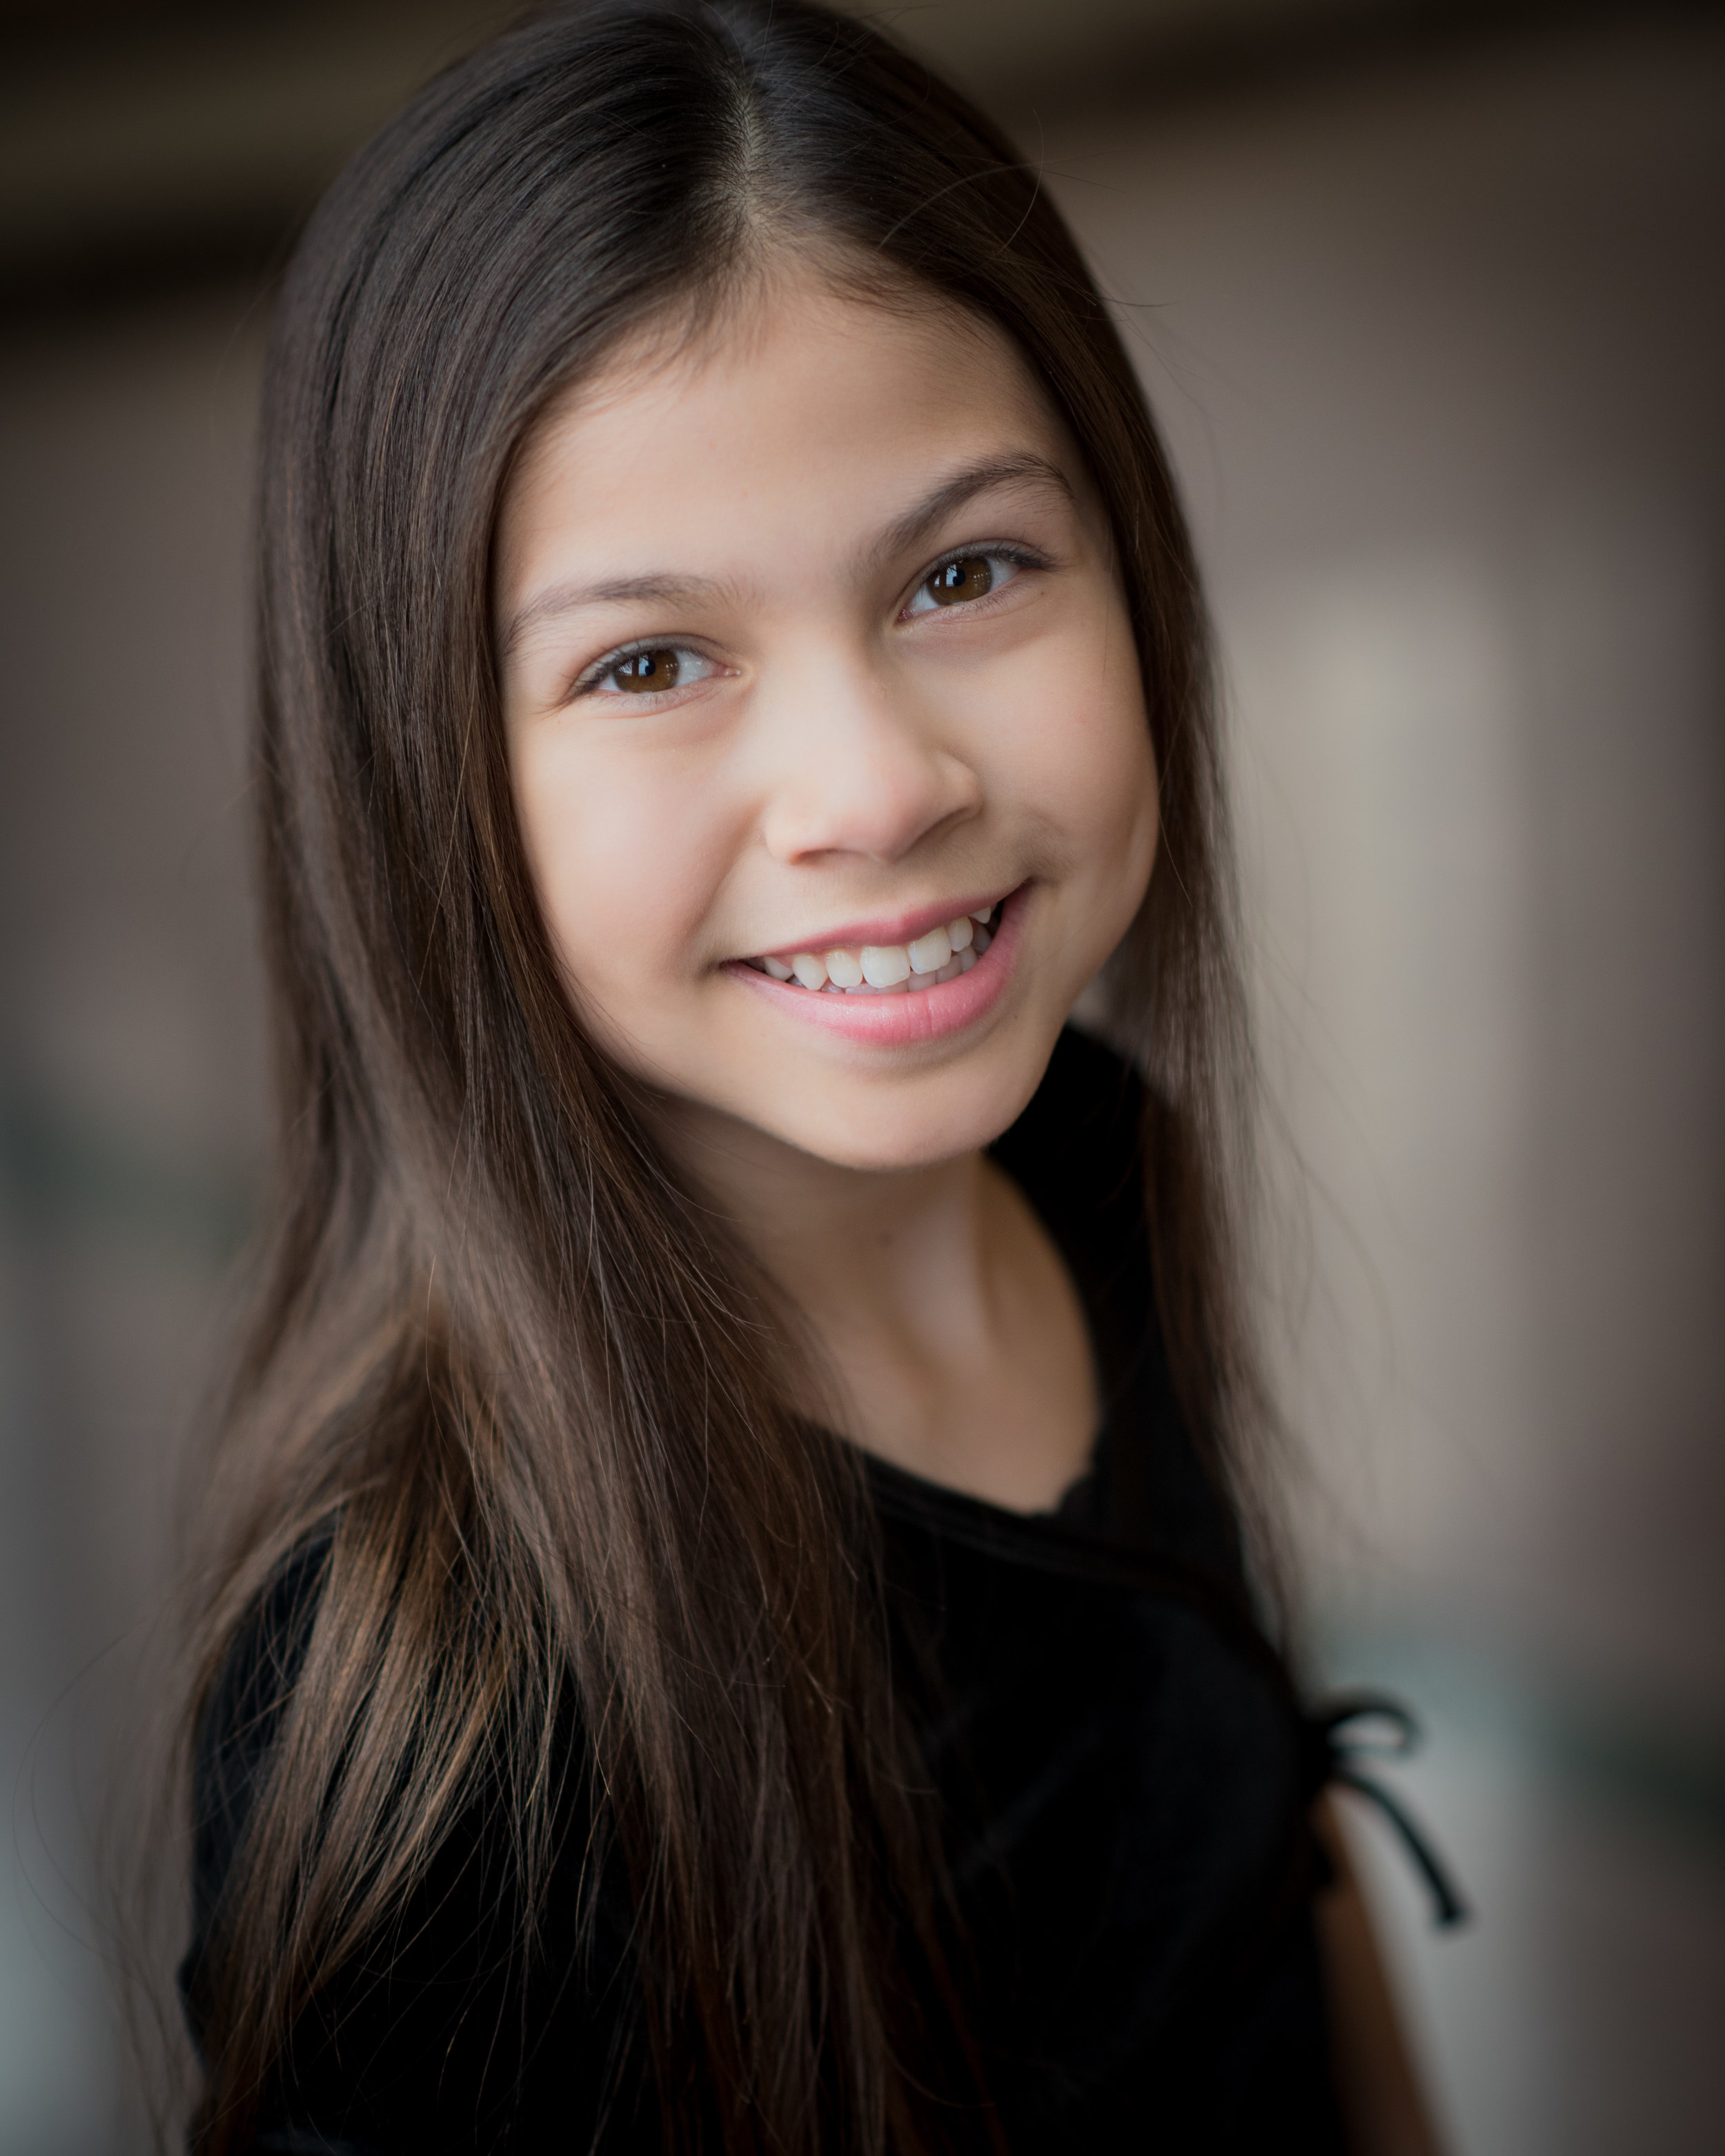 MAIA HERNANDEZ as the Small Girl